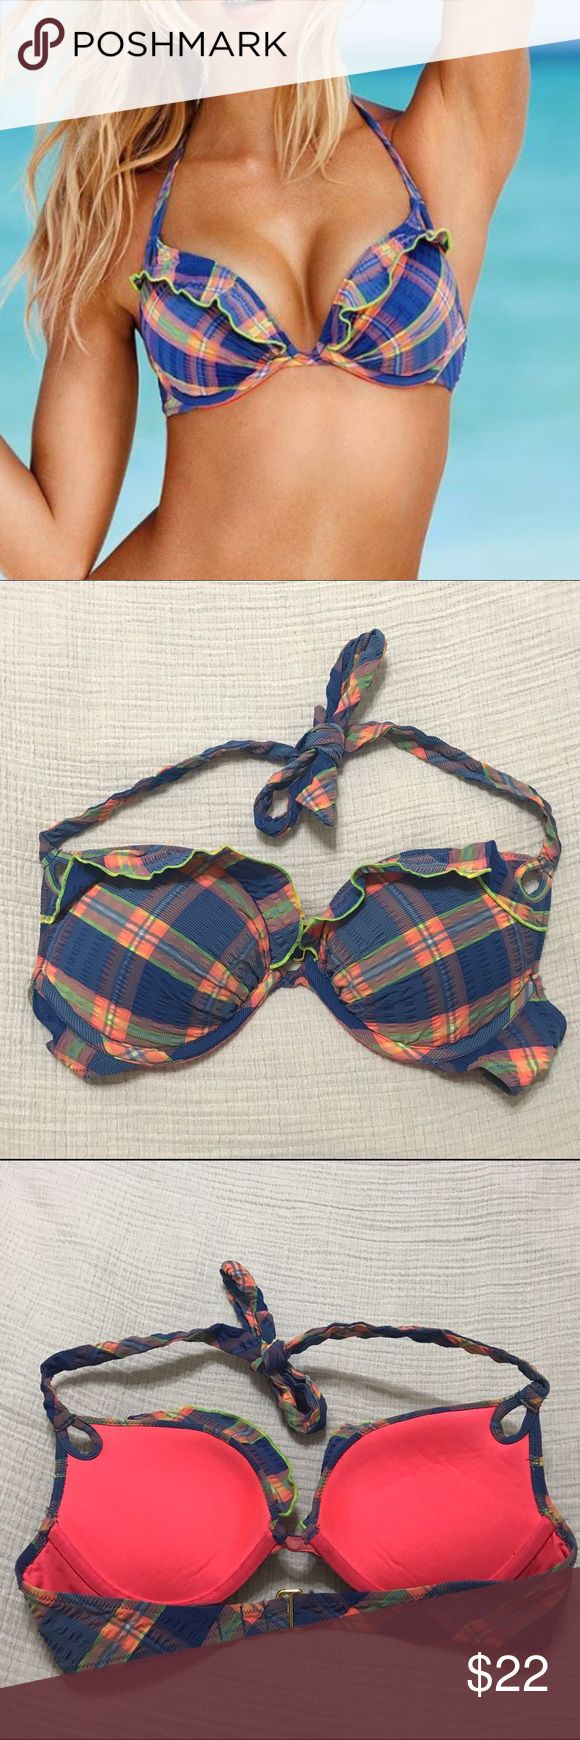 """Victoria's Secret Gorgeous Push-Up Bikini Top 34B Lightly-used Victoria's Secret Gorgeous Swim top. I loved it because it was used in the marketing that year. It's blue madras plaid with a ruffle along the top. Size is 34B. There is """"extreme"""" push up, and the thickest part of the push up padding is about an inch thick. Would look cute with a white, bright coral, or lime green bottom.  Price is never firm - make me an offer! Victoria's Secret Swim Bikinis"""